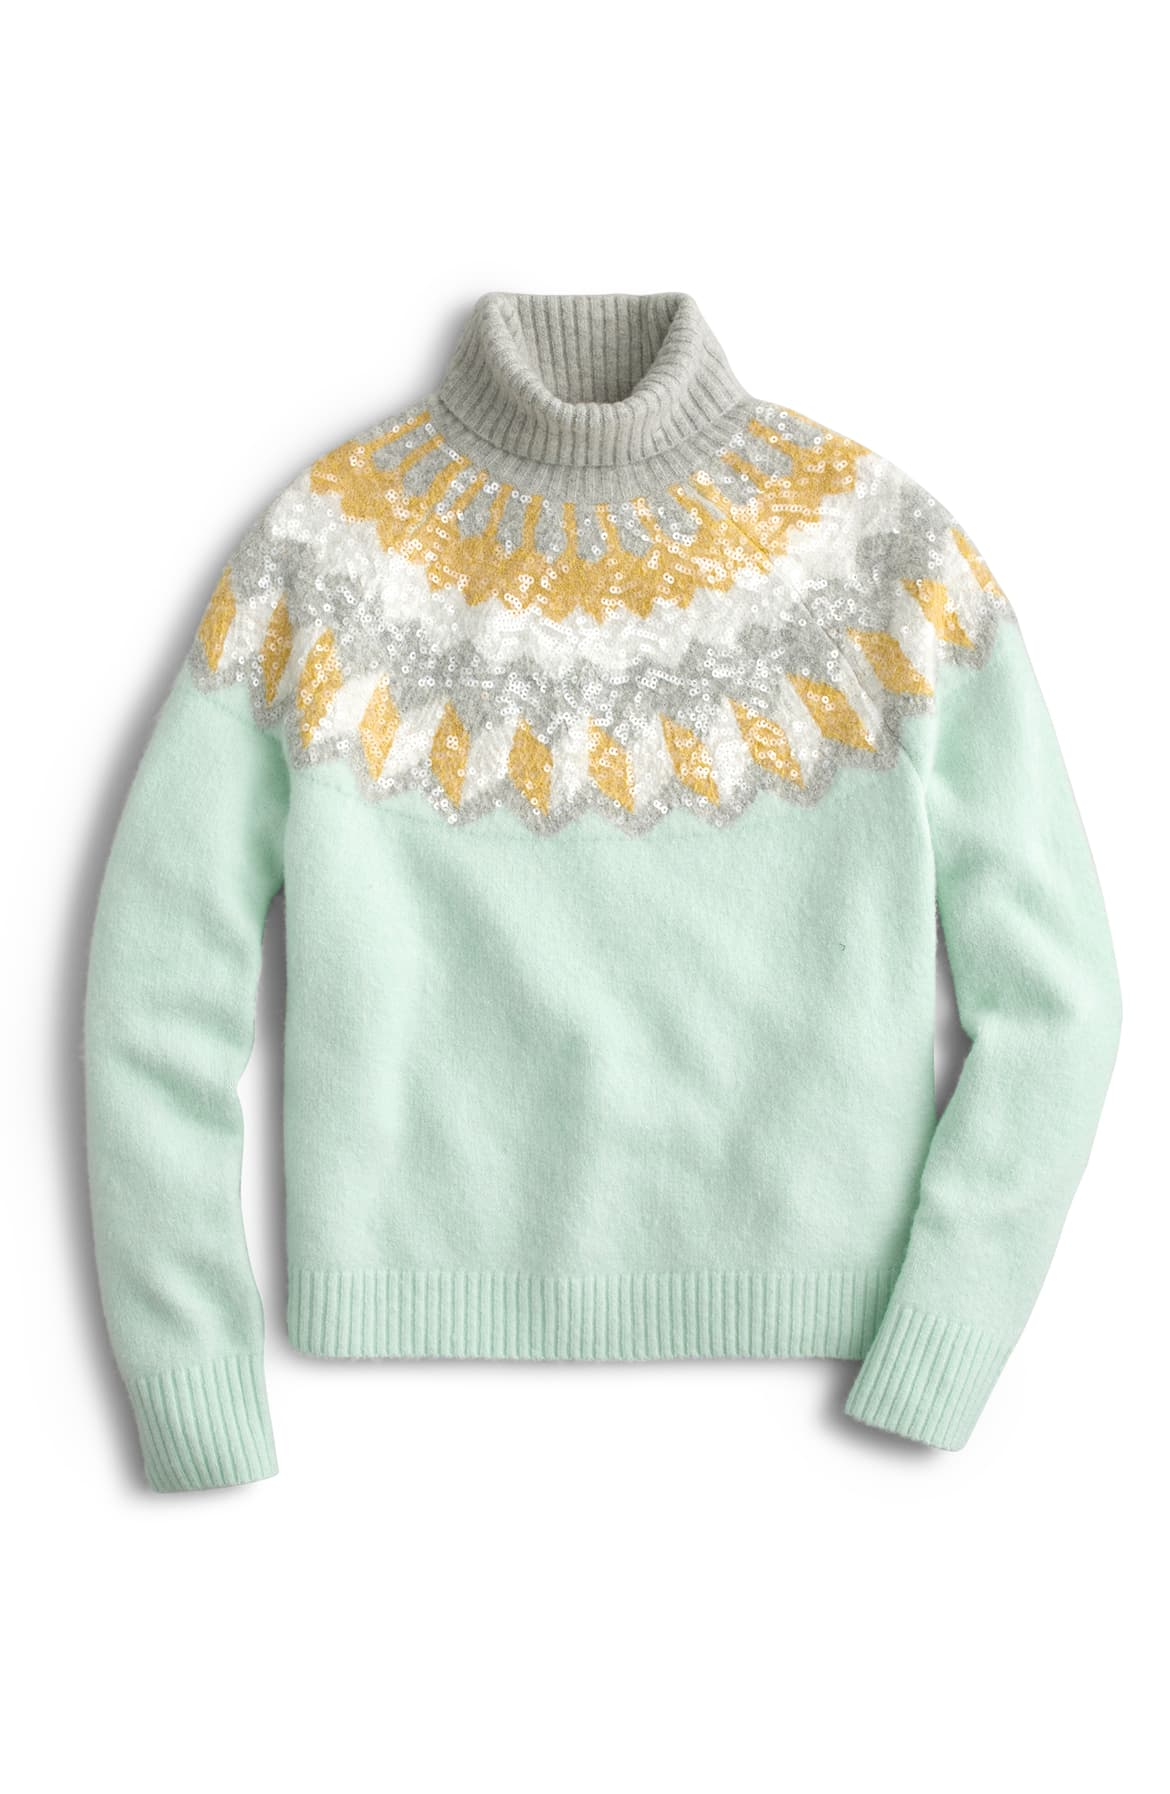 "<a  href=""https://shop.nordstrom.com/s/j-crew-fair-isle-rollneck-sweater-regular-plus-size/5445887/full?origin=keywordsearch-personalizedsort&breadcrumb=Home%2FAll%20Results&fashioncolor=Blue&color=adobe%20multi"" target=""_blank"" title=""https://shop.nordstrom.com/s/j-crew-fair-isle-rollneck-sweater-regular-plus-size/5445887/full?origin=keywordsearch-personalizedsort&breadcrumb=Home%2FAll%20Results&fashioncolor=Blue&color=adobe%20multi"">J. Crew Supersoft Sequin Fair Isle Turtleneck - $178.</a>{&nbsp;}From cozy to gold hued to tailored, Nordstrom has the hottest trends for getting glam this holiday season! (Credit: Nordstrom)"